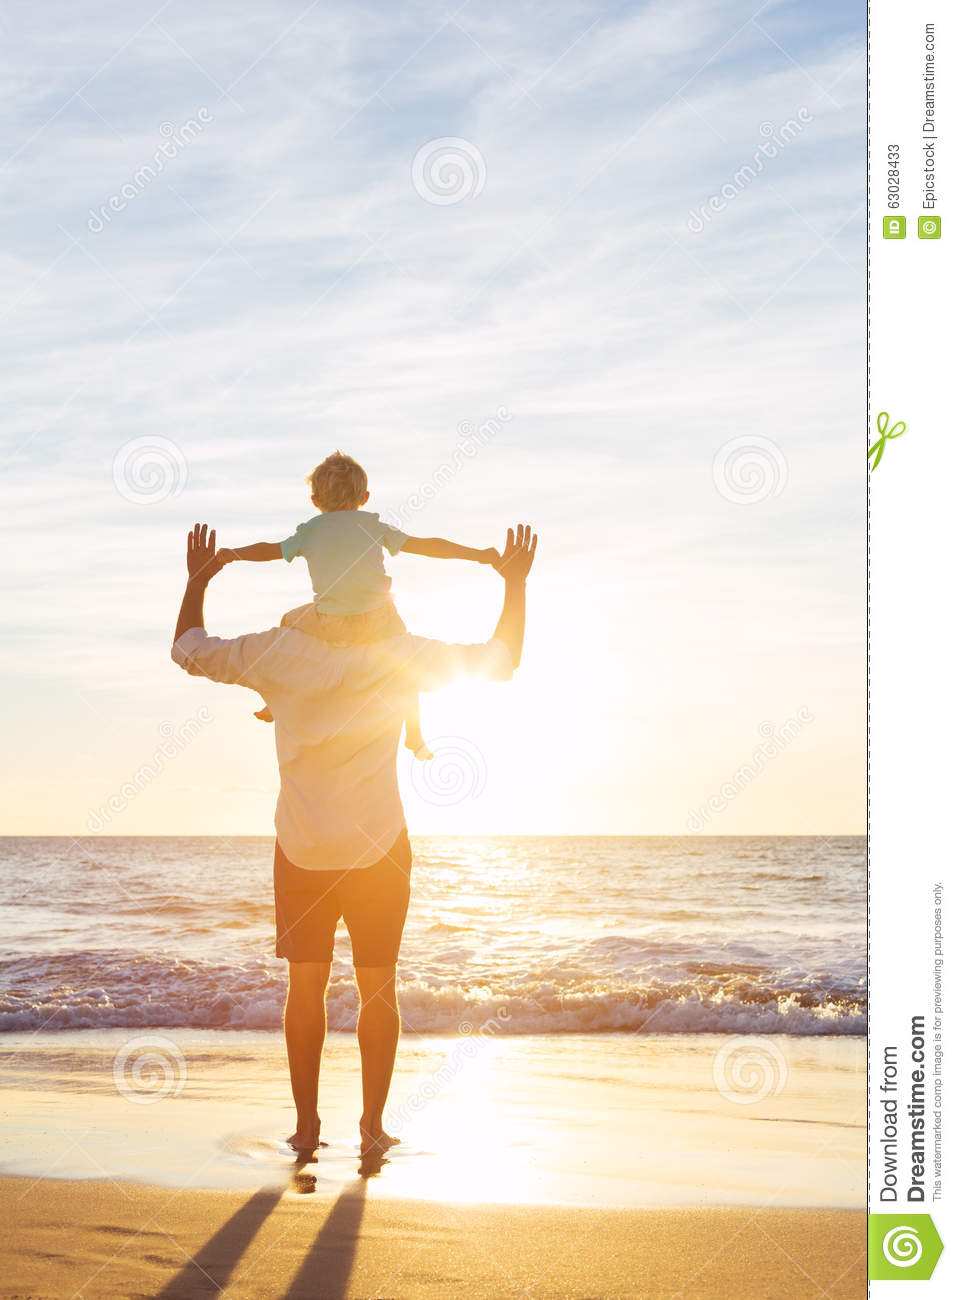 081fb0cf3e5 Father And Son Playing Together Stock Image - Image of childhood ...